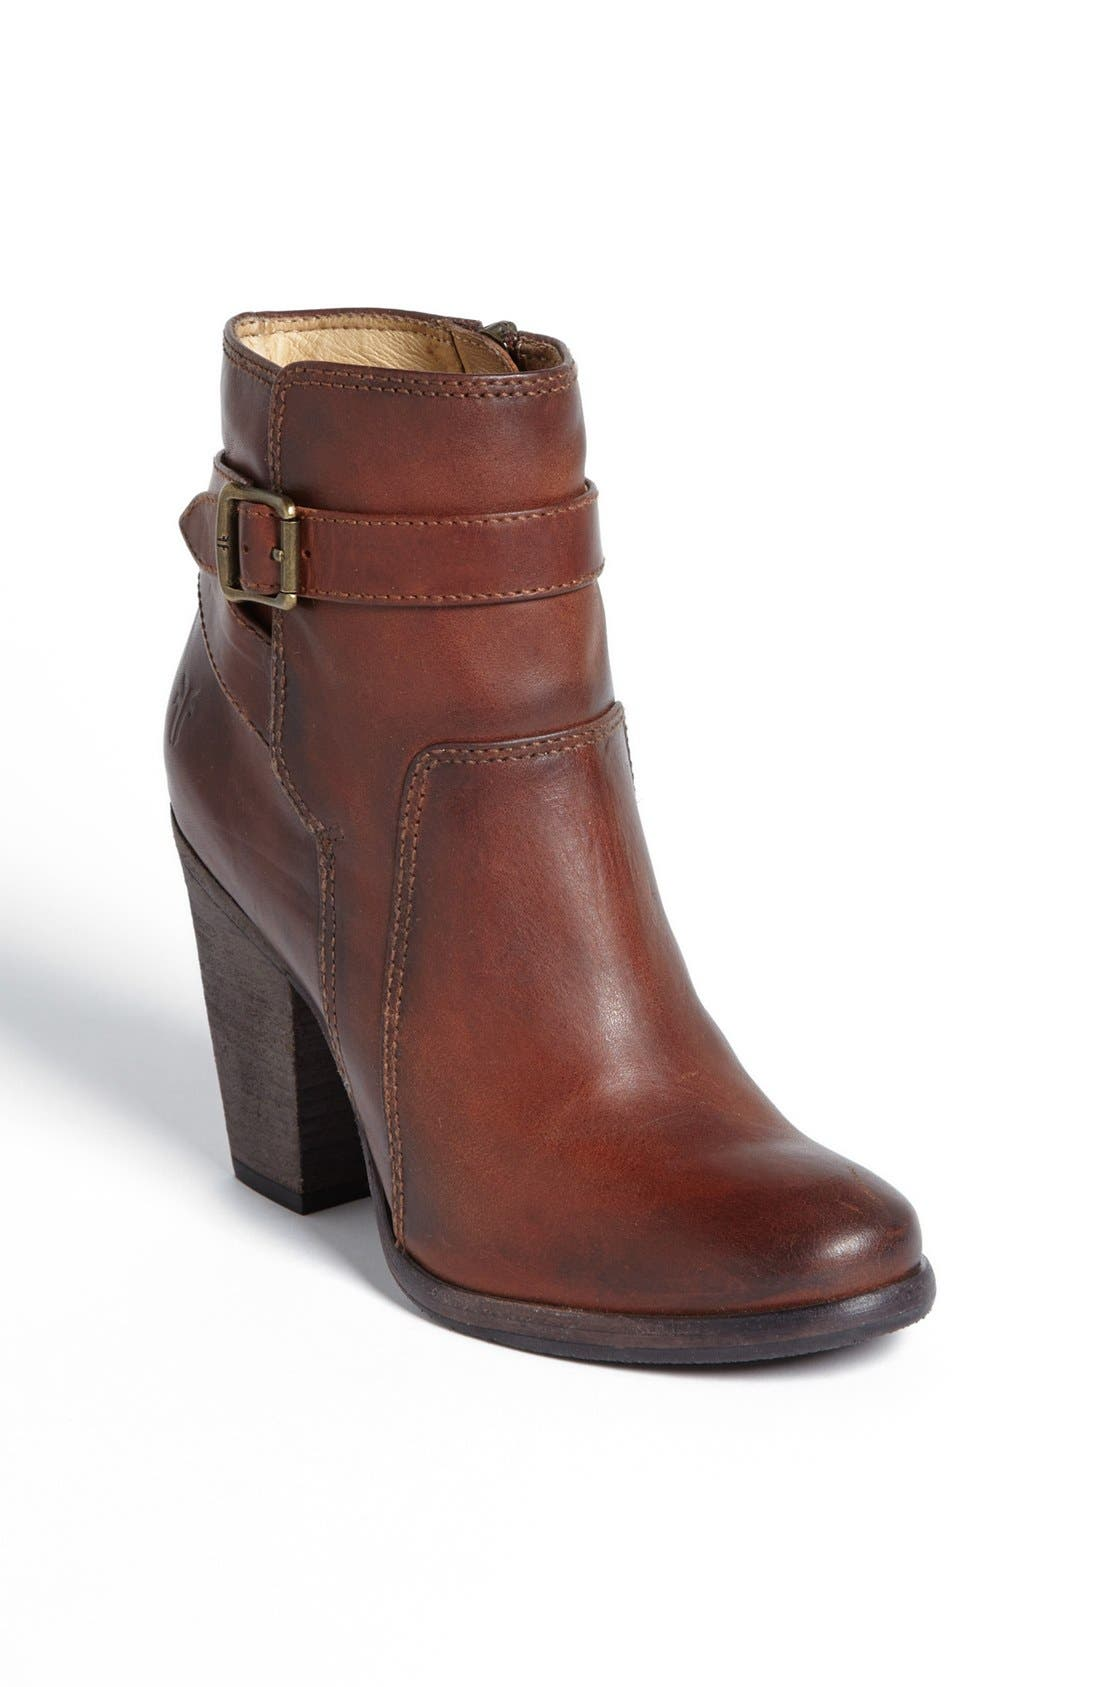 Alternate Image 1 Selected - Frye 'Patty' Leather Riding Bootie (Women)